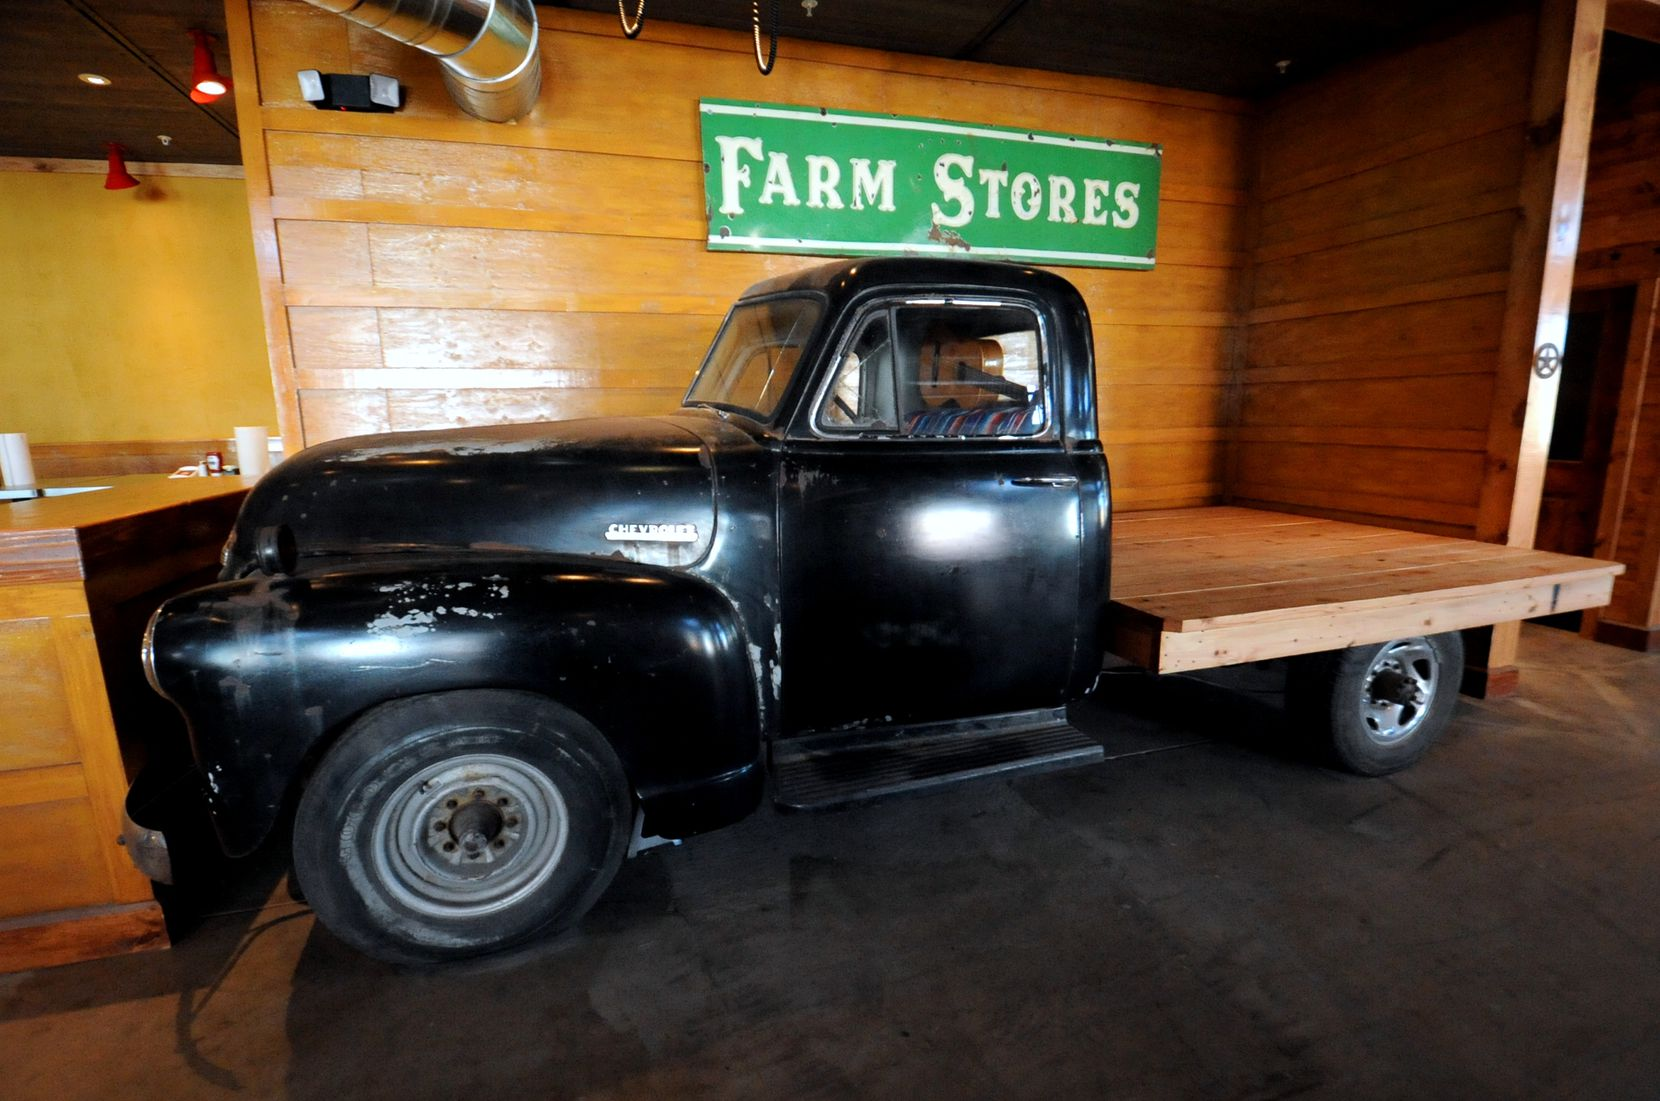 This recycled 1951 Chevrolet truck serves as a stage for local musicians to play at Ten 50 BBQ in Richardson.